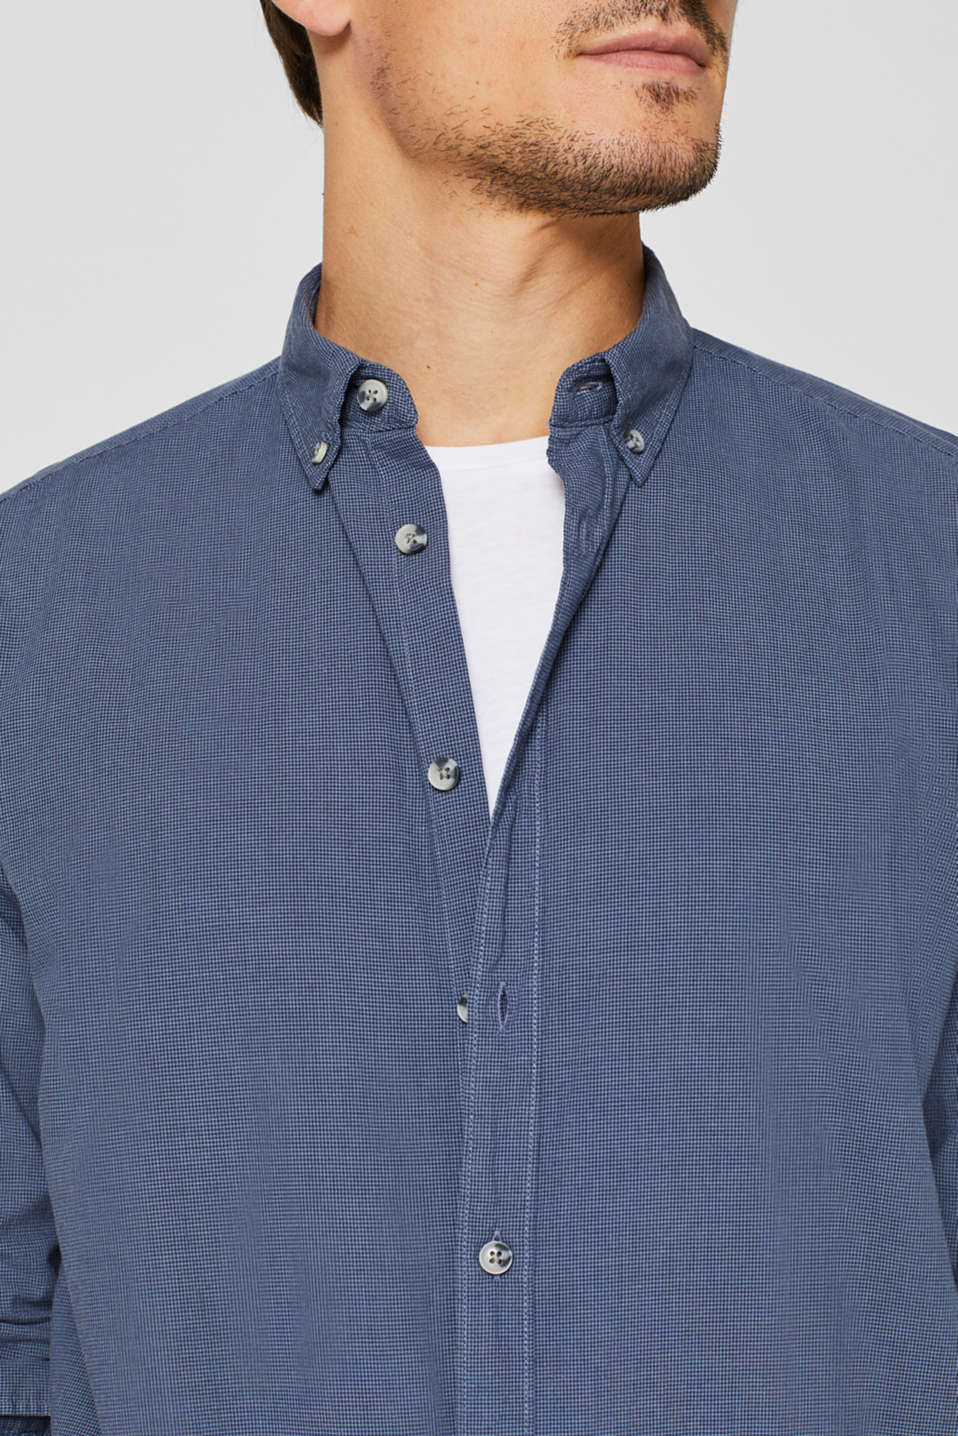 Shirts woven Regular fit, NAVY, detail image number 2